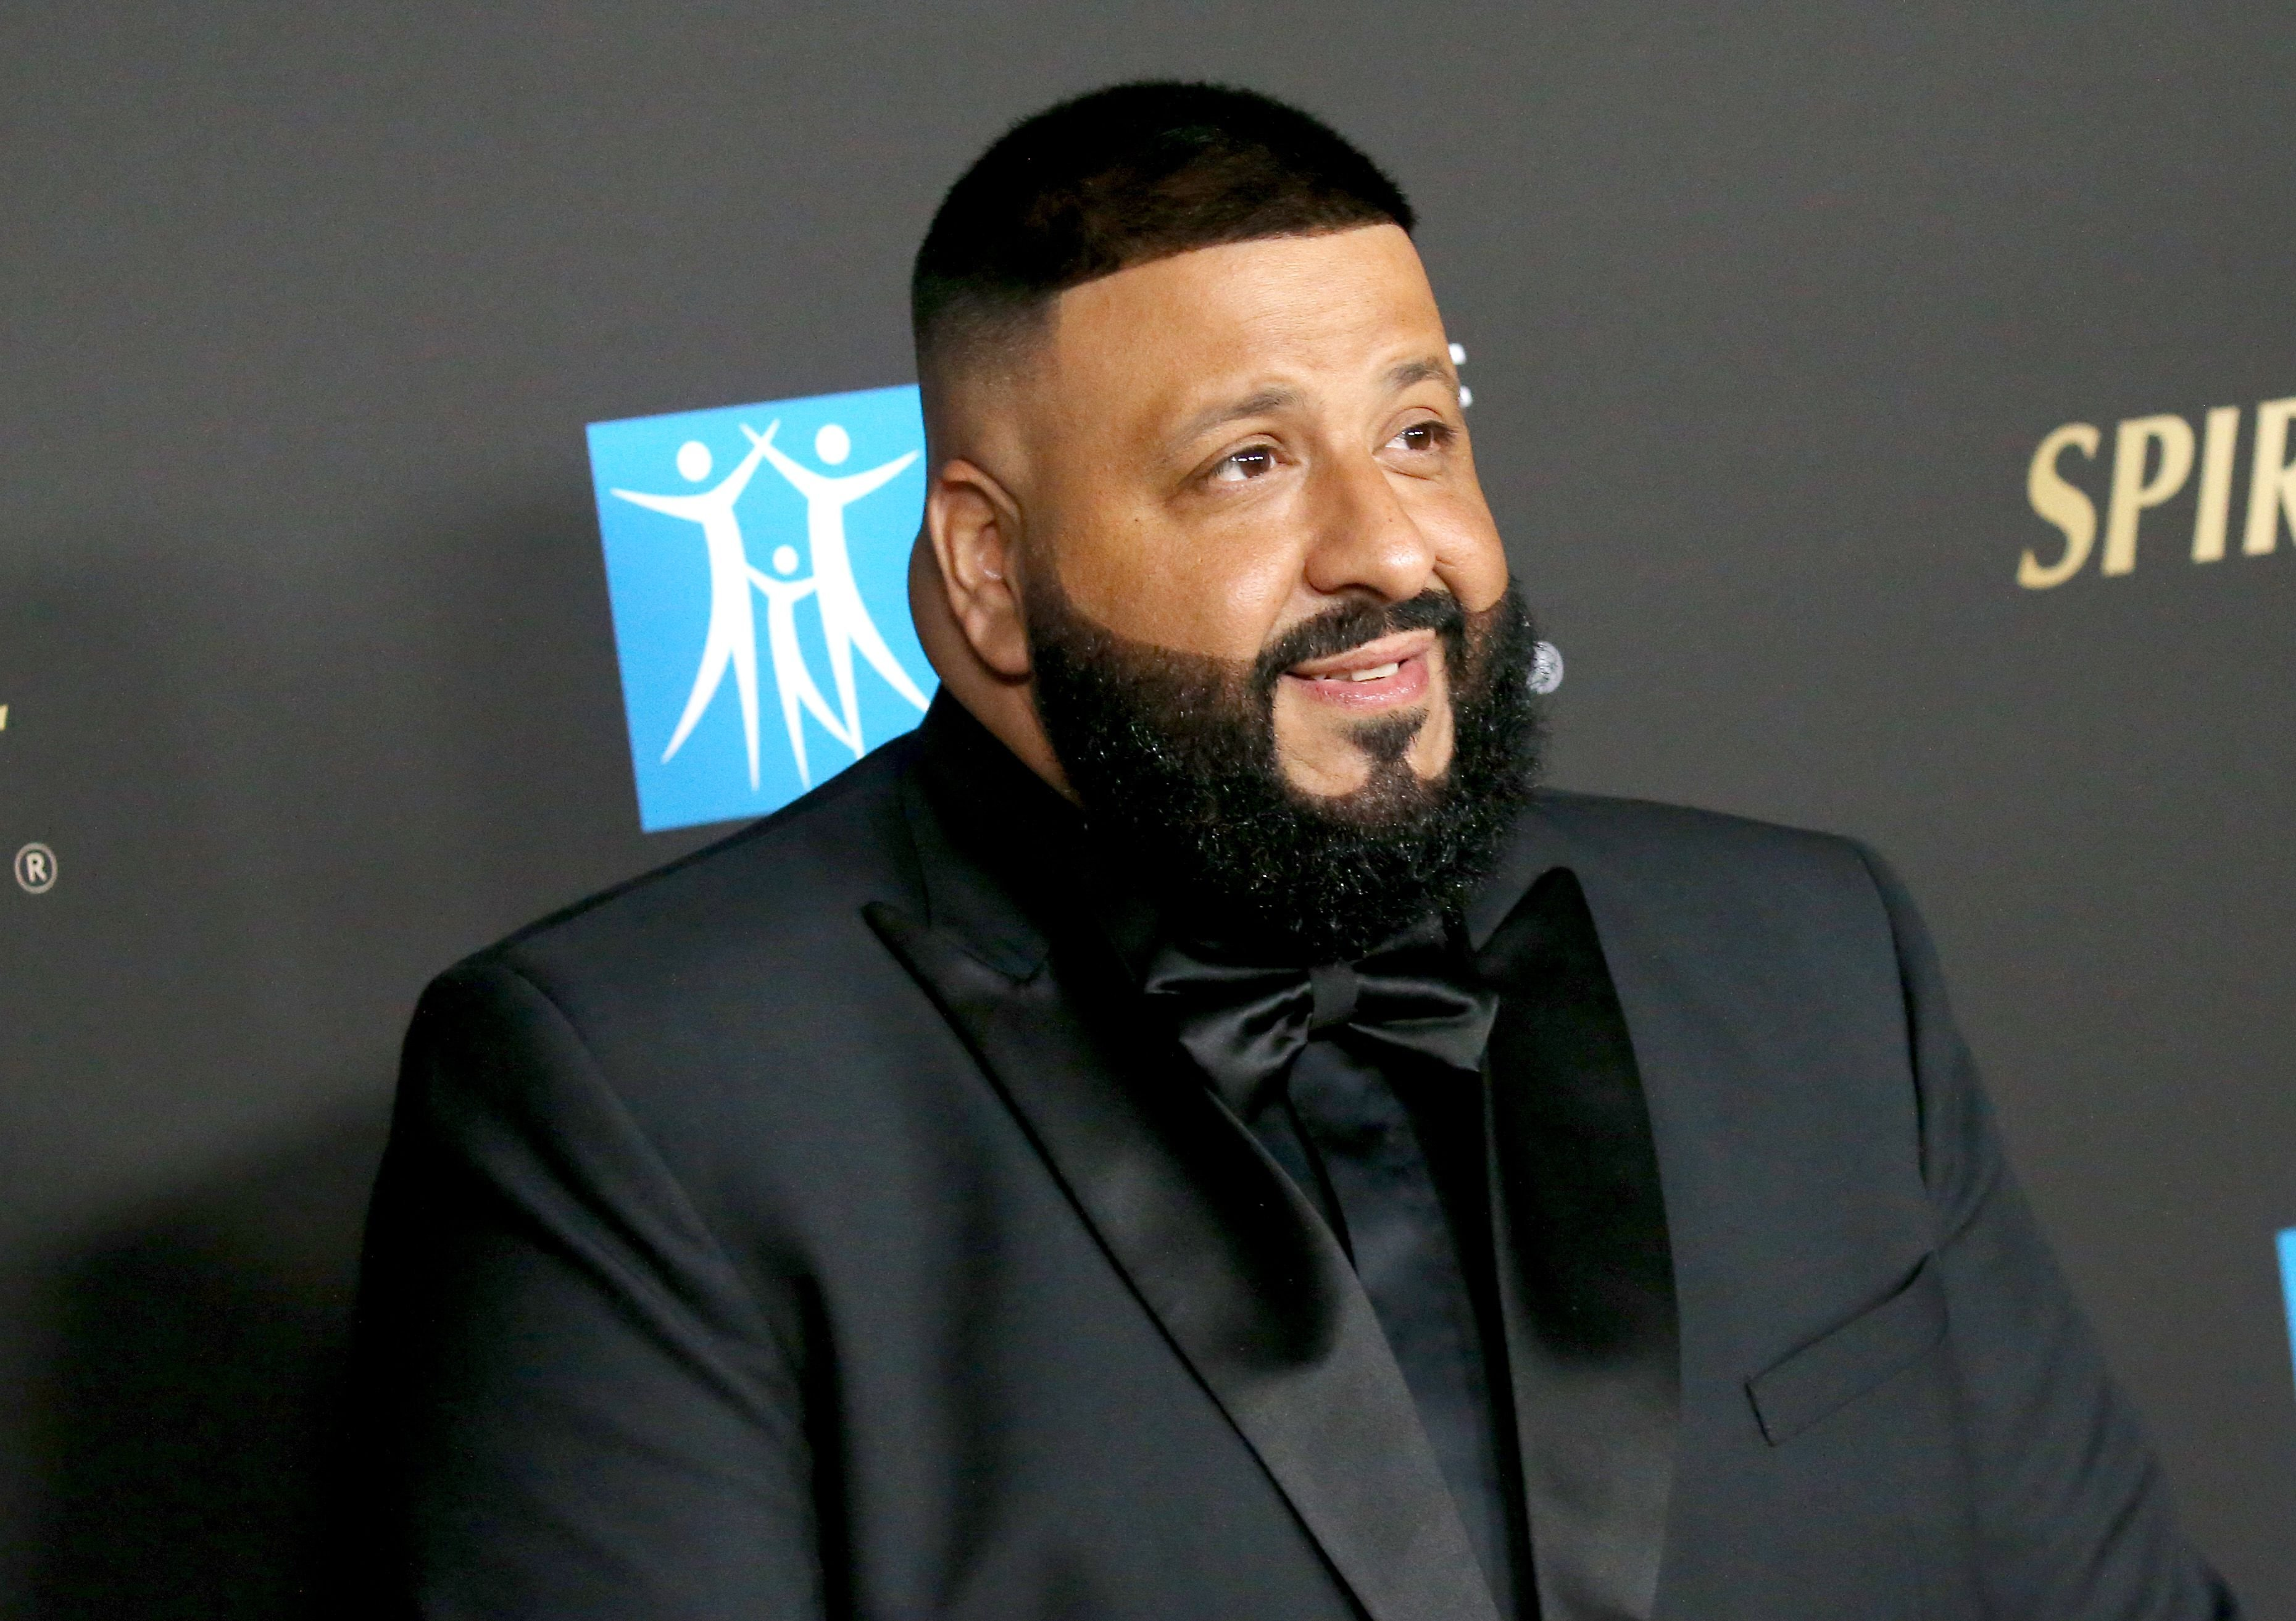 DJ Khaled at the City Of Hope's Spirit of Life 2019 Gala held at the Barker Hangar on October 10, 2019 | Photo: Getty Images